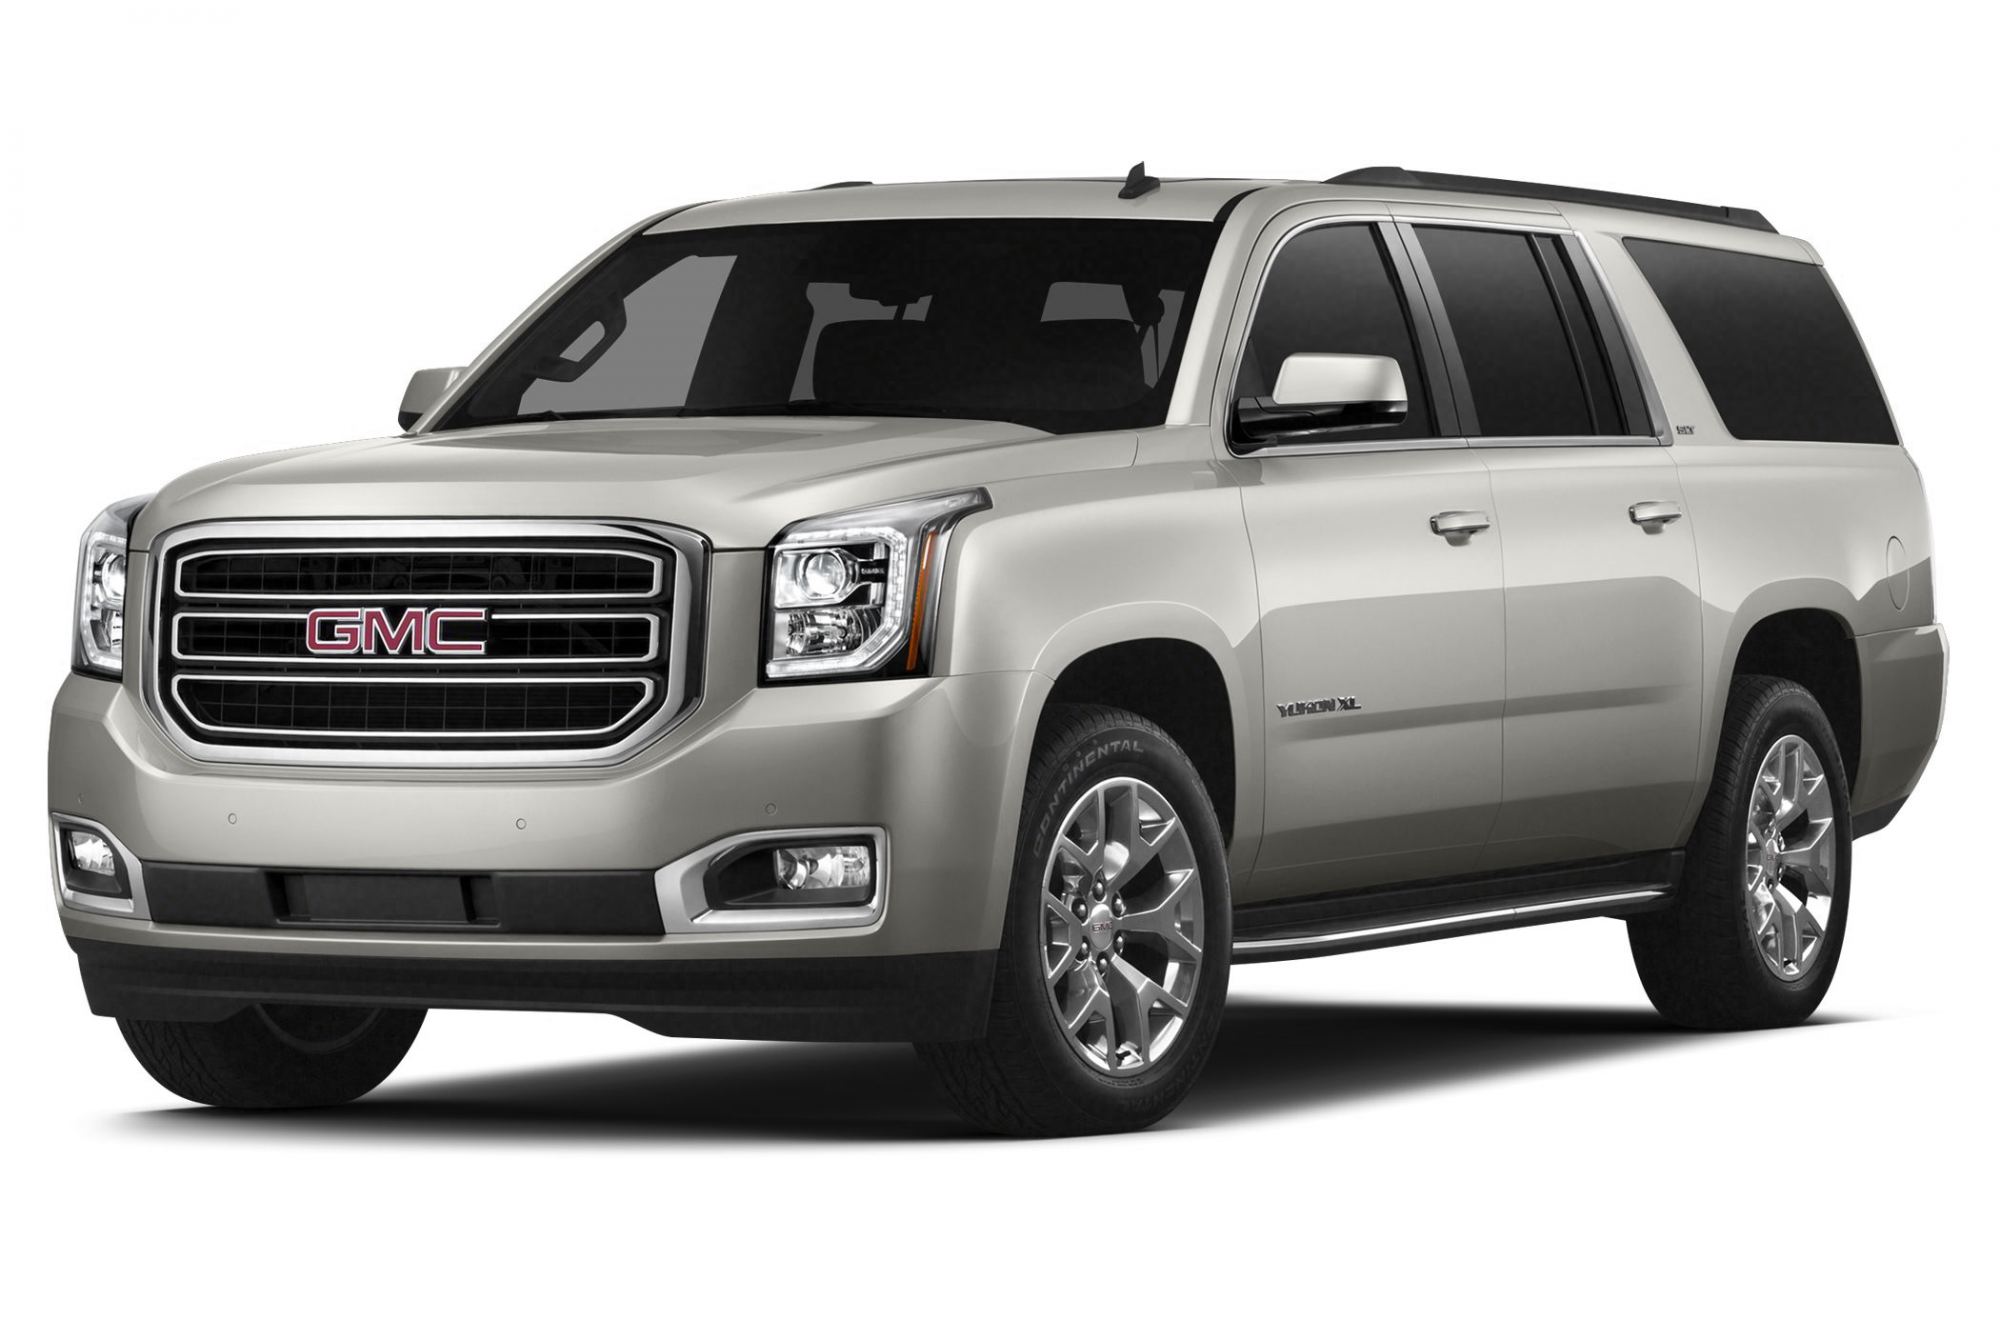 comparison gmc yukon xl denali 2017 vs gmc yukon xl. Black Bedroom Furniture Sets. Home Design Ideas